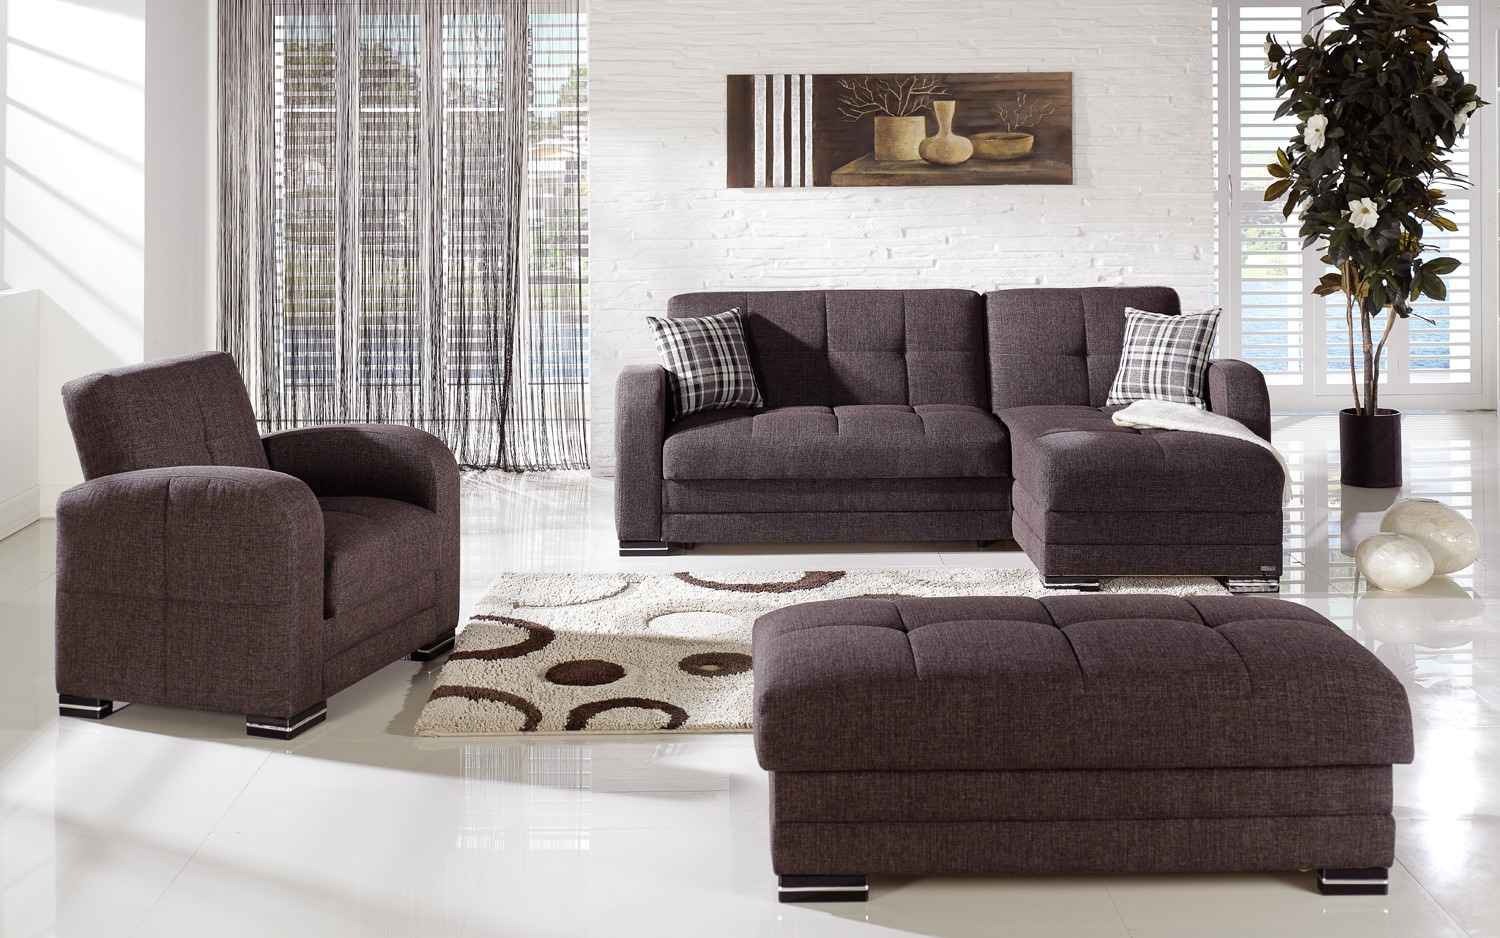 Kubo Andre Dark Brown Sectional Sofaistikbal (Sunset) Within Aspen 2 Piece Sleeper Sectionals With Laf Chaise (Photo 17 of 30)